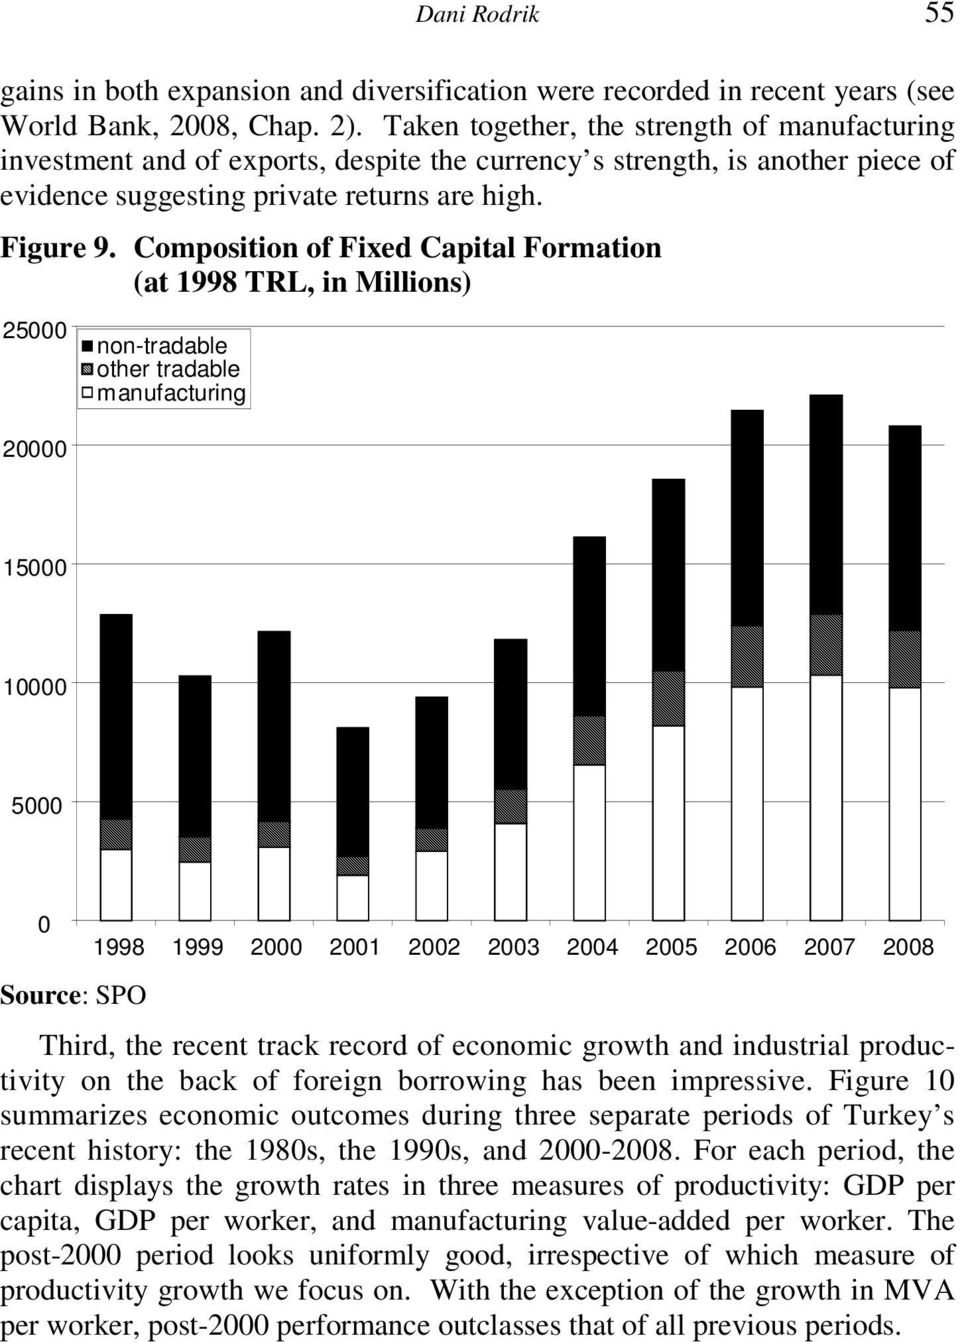 Composition of Fixed Capital Formation (at 1998 TRL, in Millions) 25000 20000 non-tradable other tradable manufacturing 15000 10000 5000 0 Source: SPO 1998 1999 2000 2001 2002 2003 2004 2005 2006